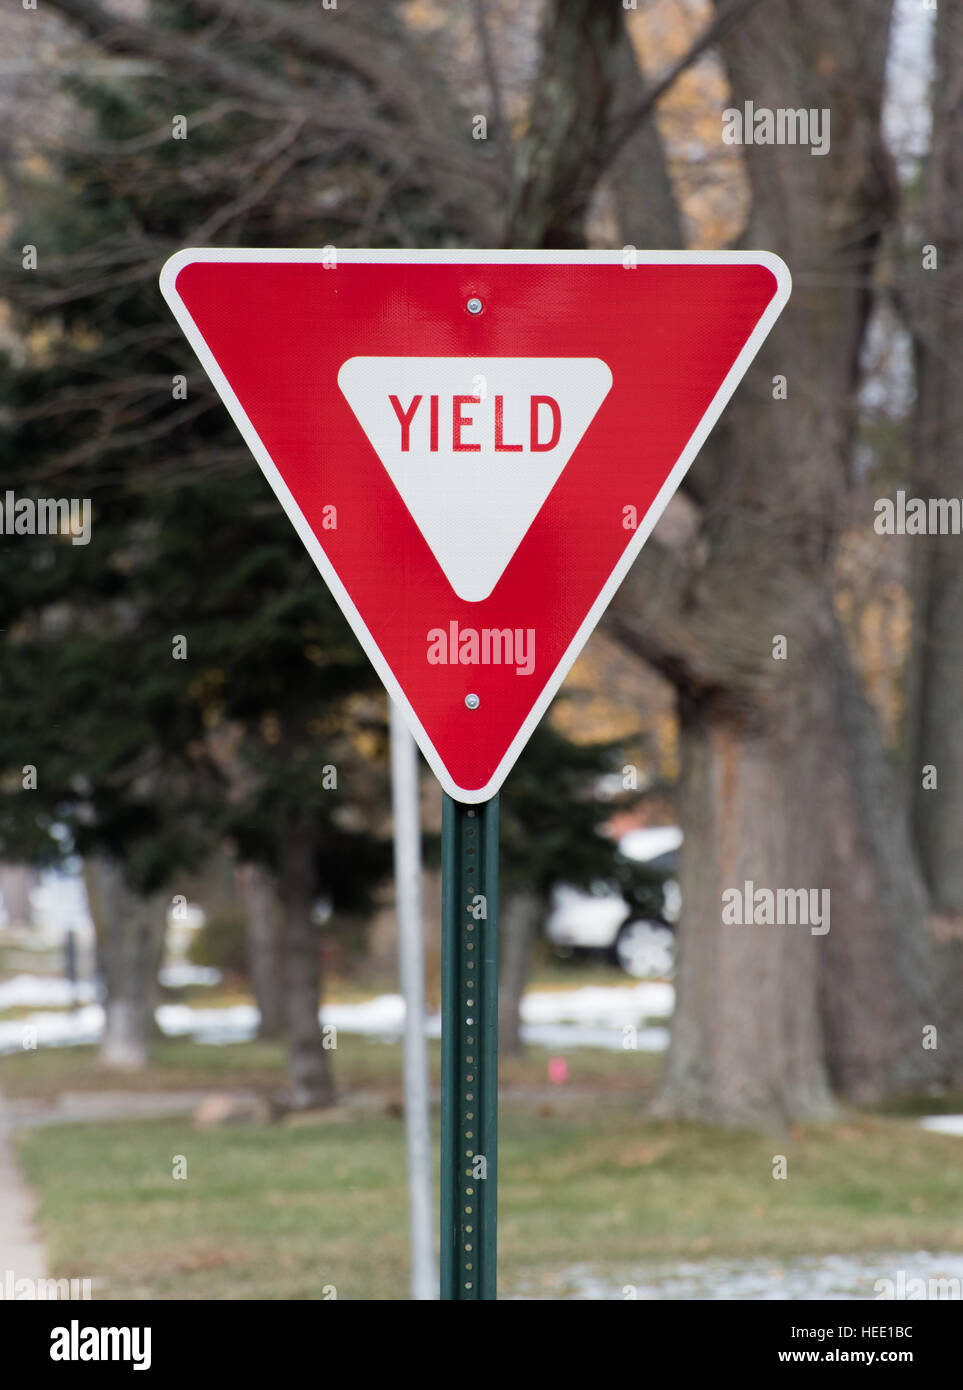 Yield street sign - Stock Image